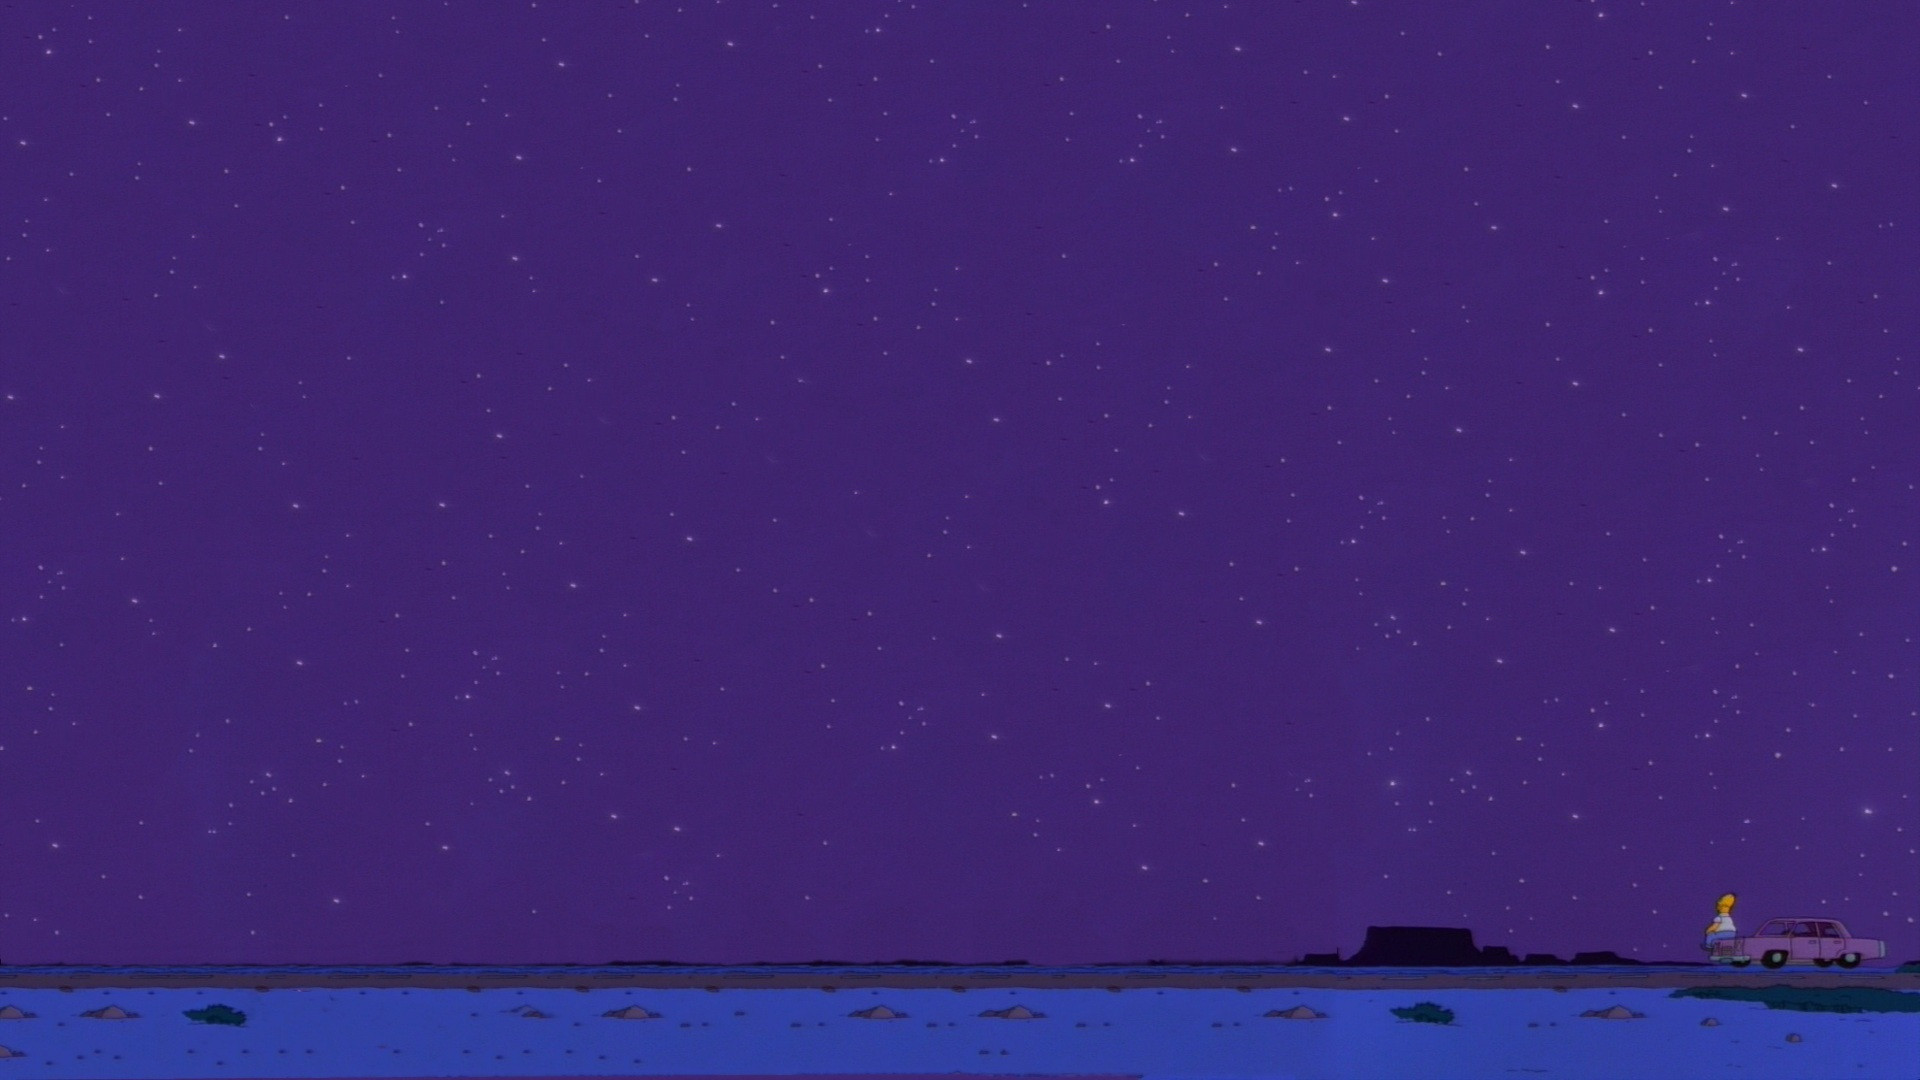 Philosophical Homer 1920 x 1080 wallpapers 1920x1080